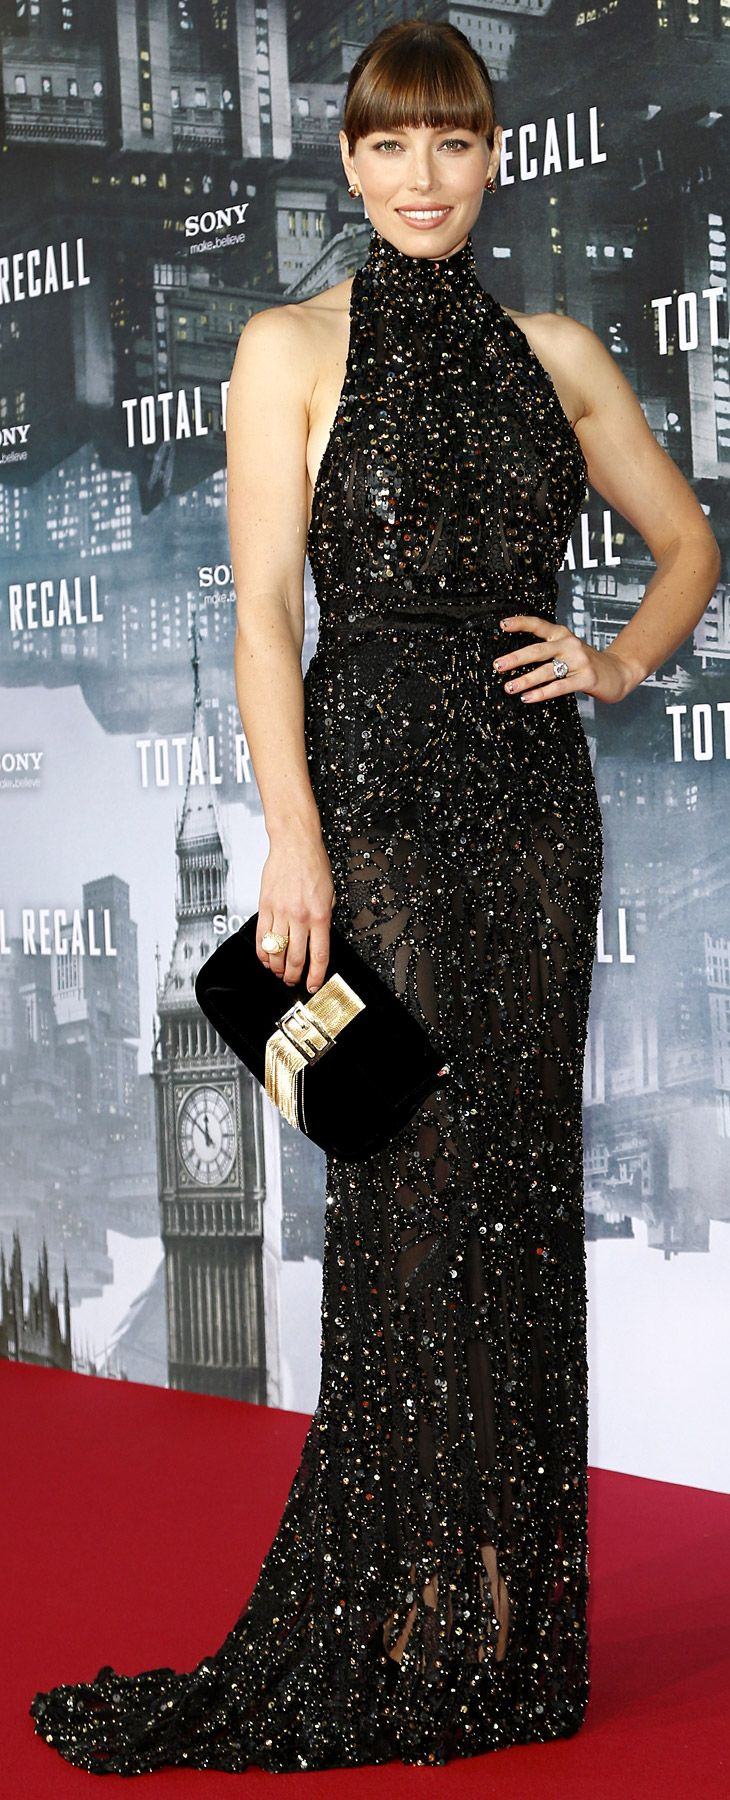 Engaged star Jessica Biel dazzled in a high-neck halter gown by Elie Saab paired with an oversized Fendi clutch at the Total Recall: Berlin Premiere in Berlin, Germany on Aug. 13, 2012.